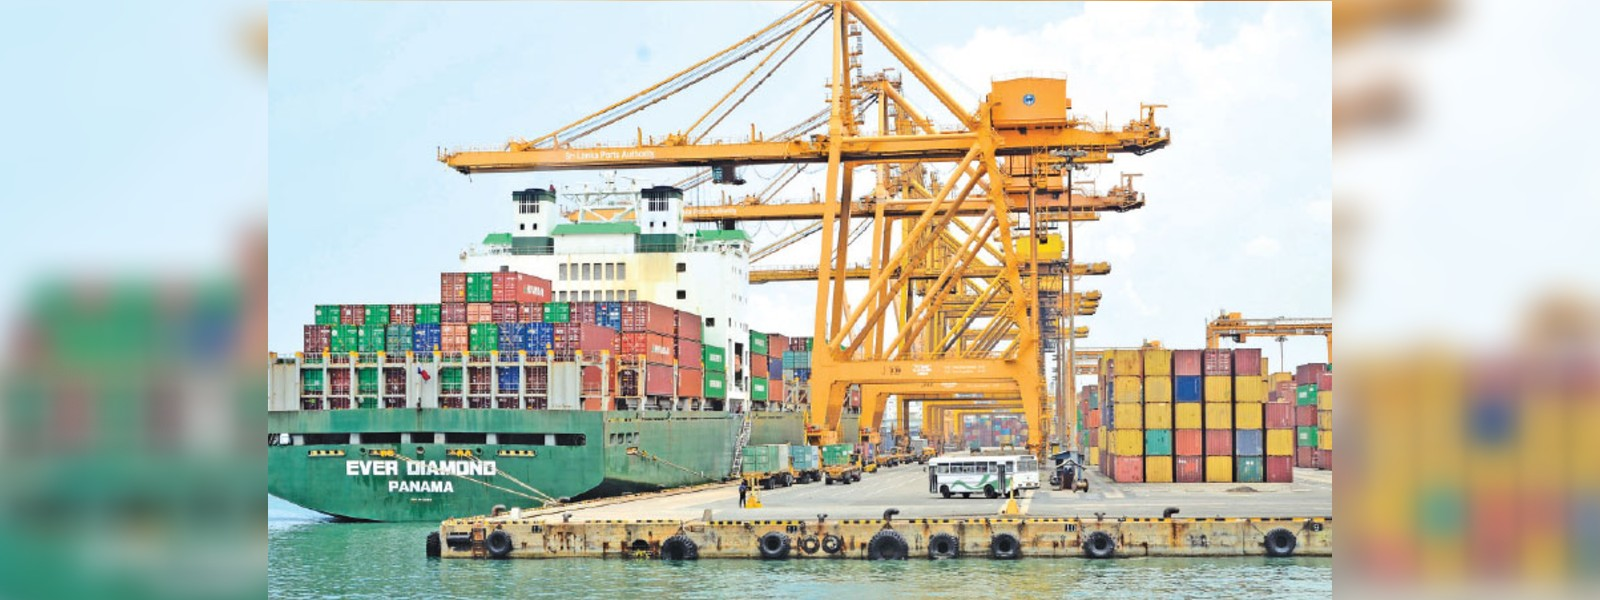 Strike action at the Colombo port called off